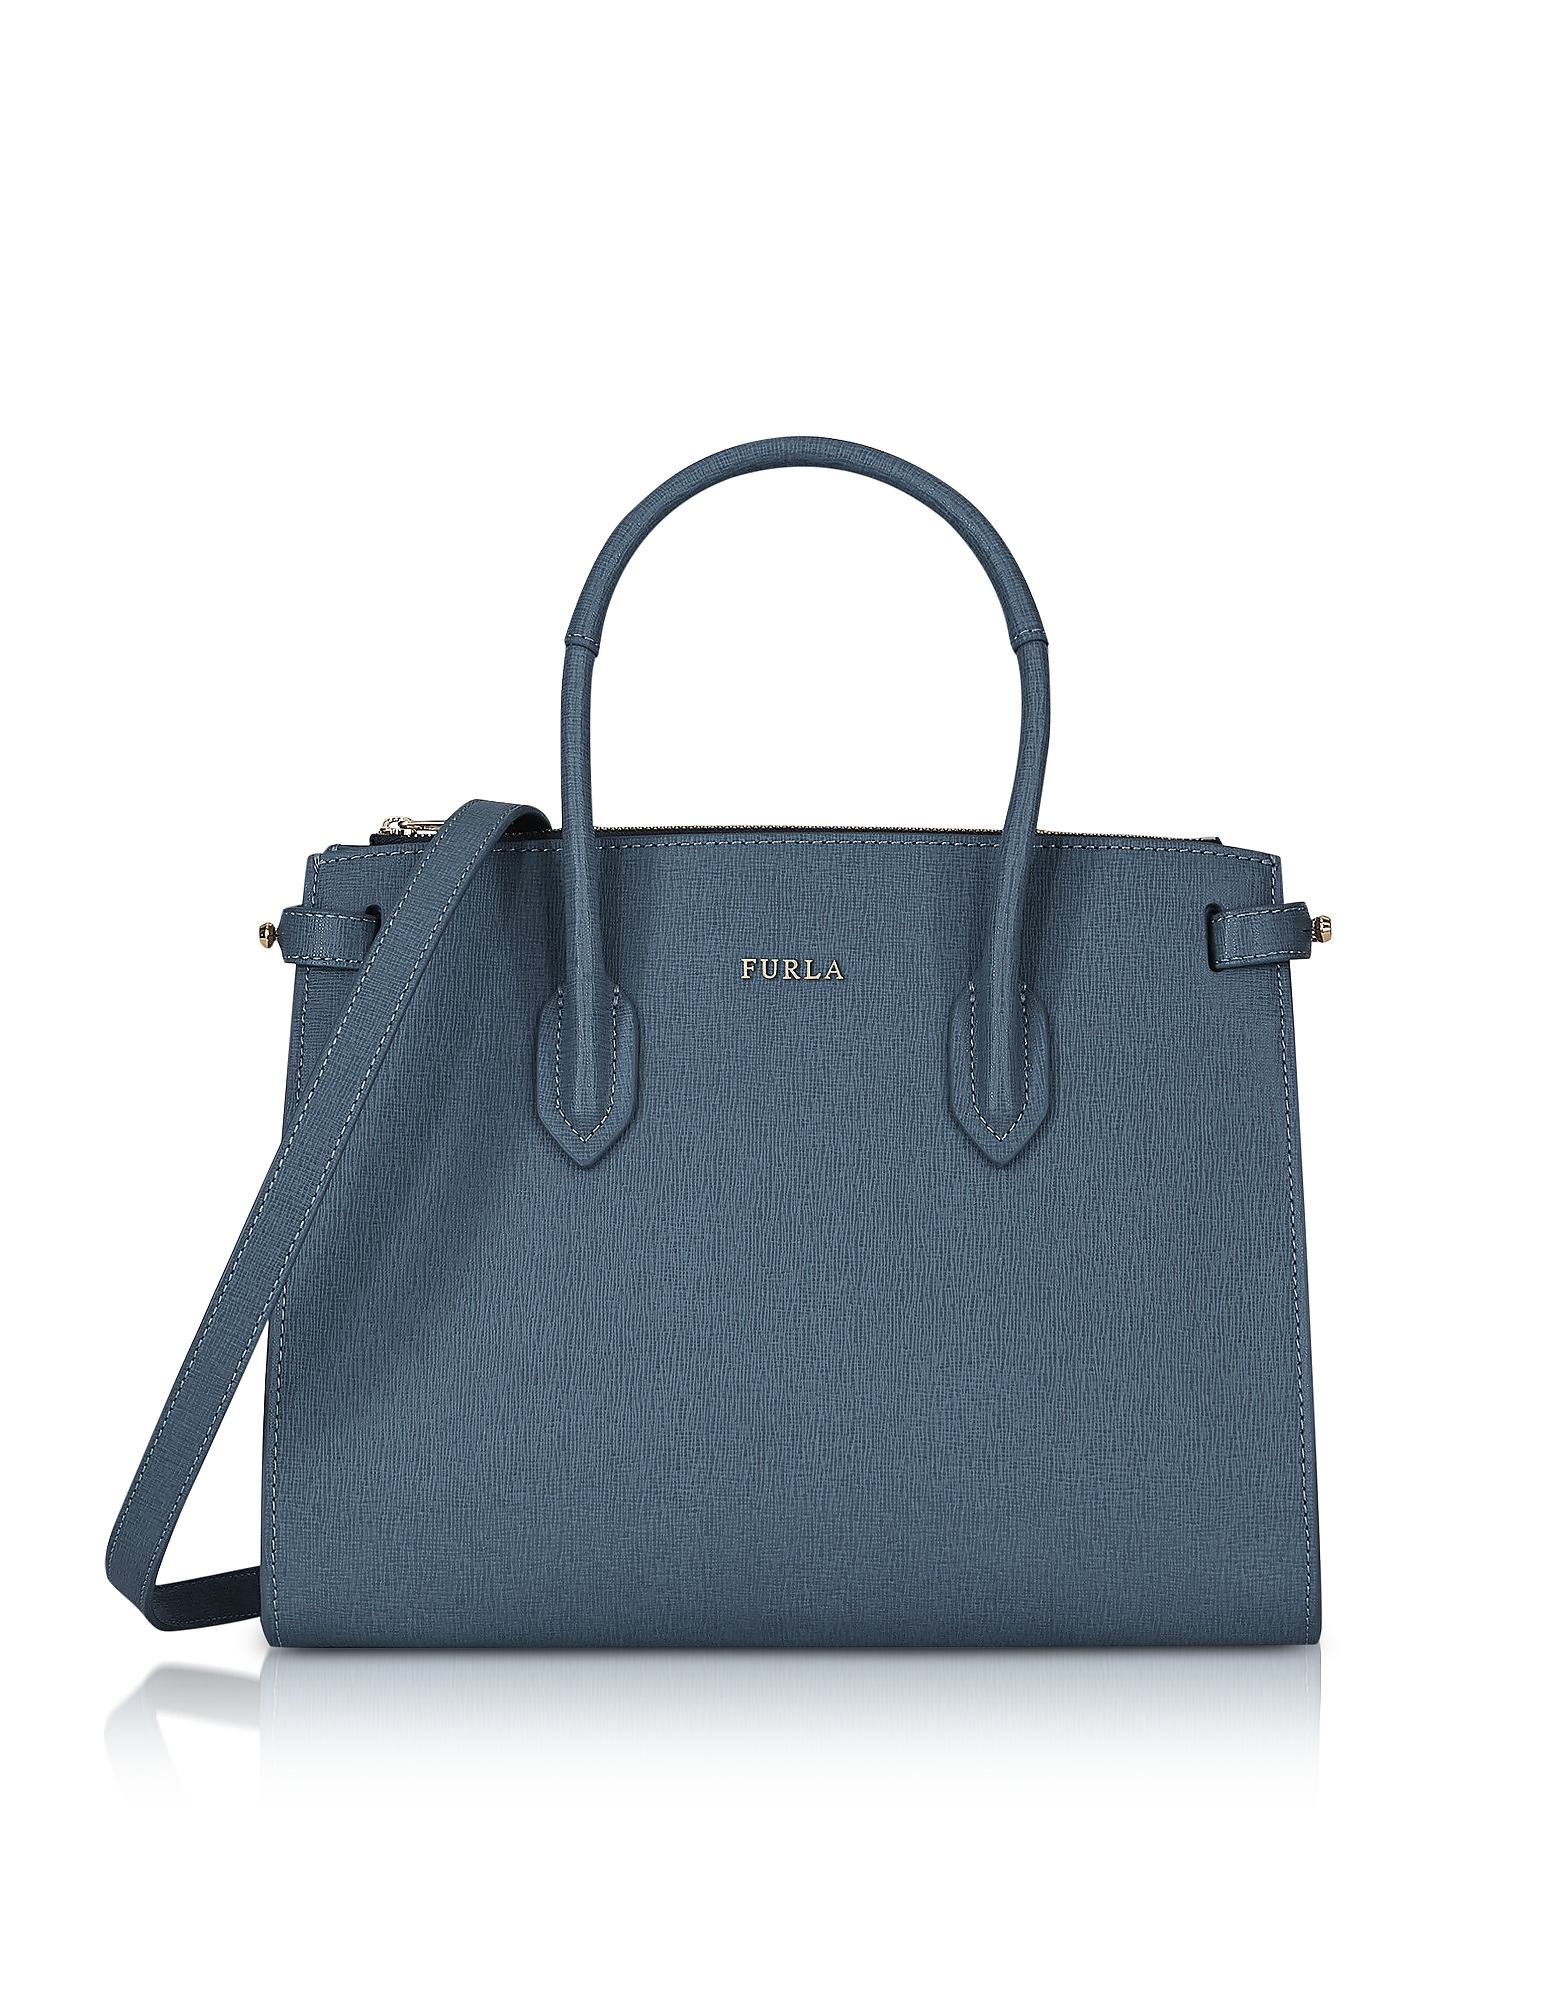 Furla Handbags, Saffiano Leather Pin Small E/W Tote Bag